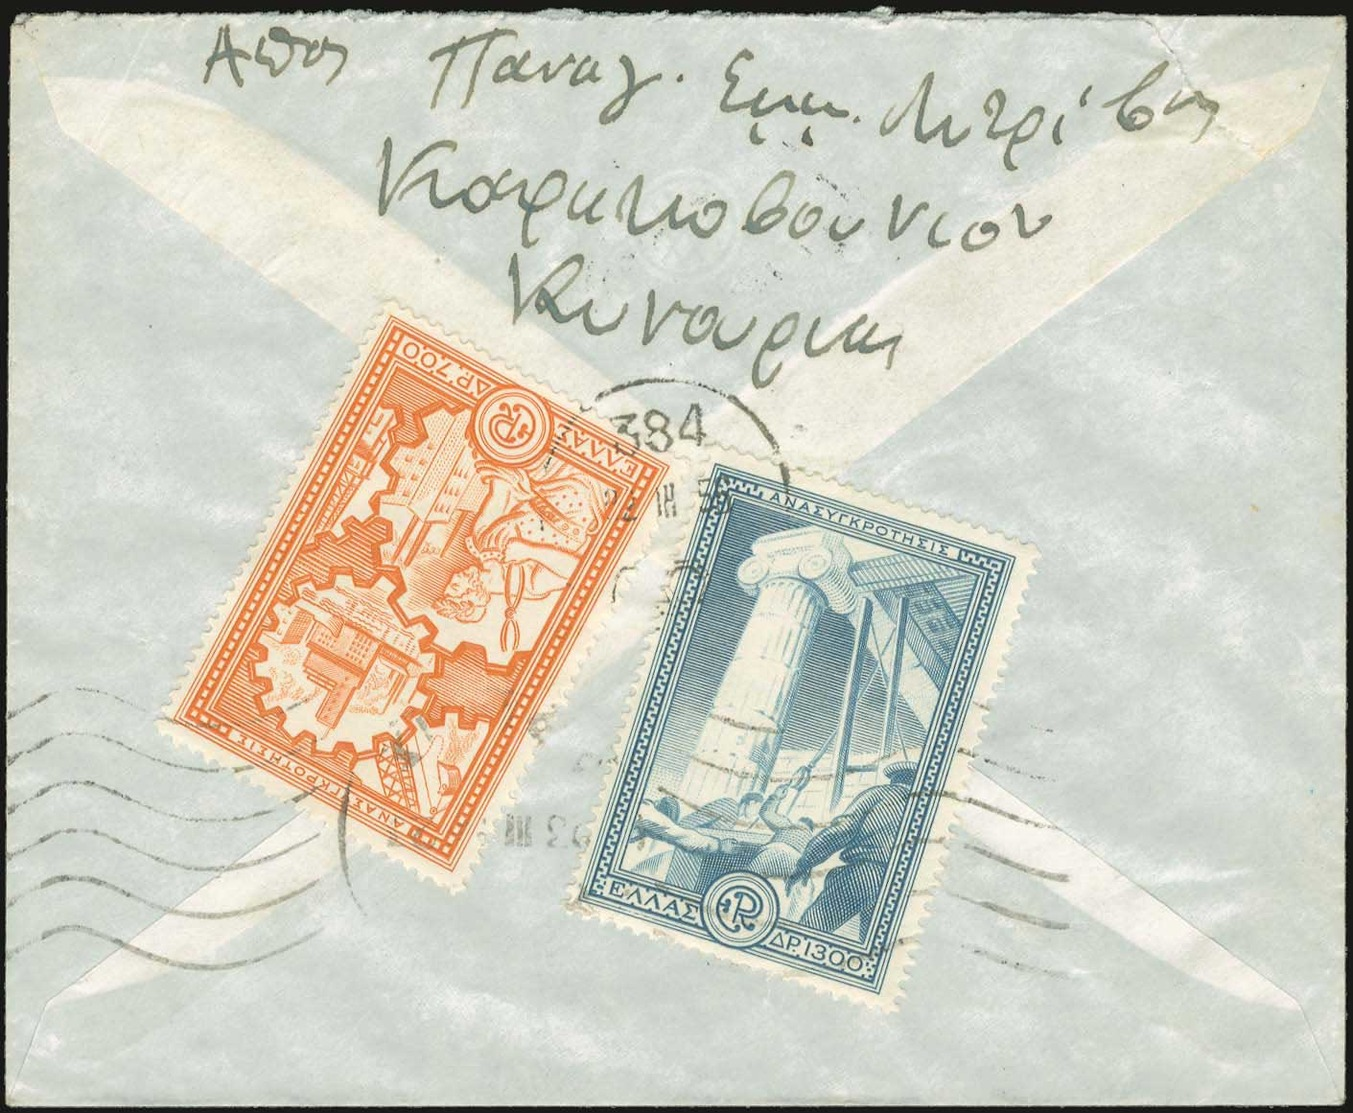 C Lot: 1076 - Timbres